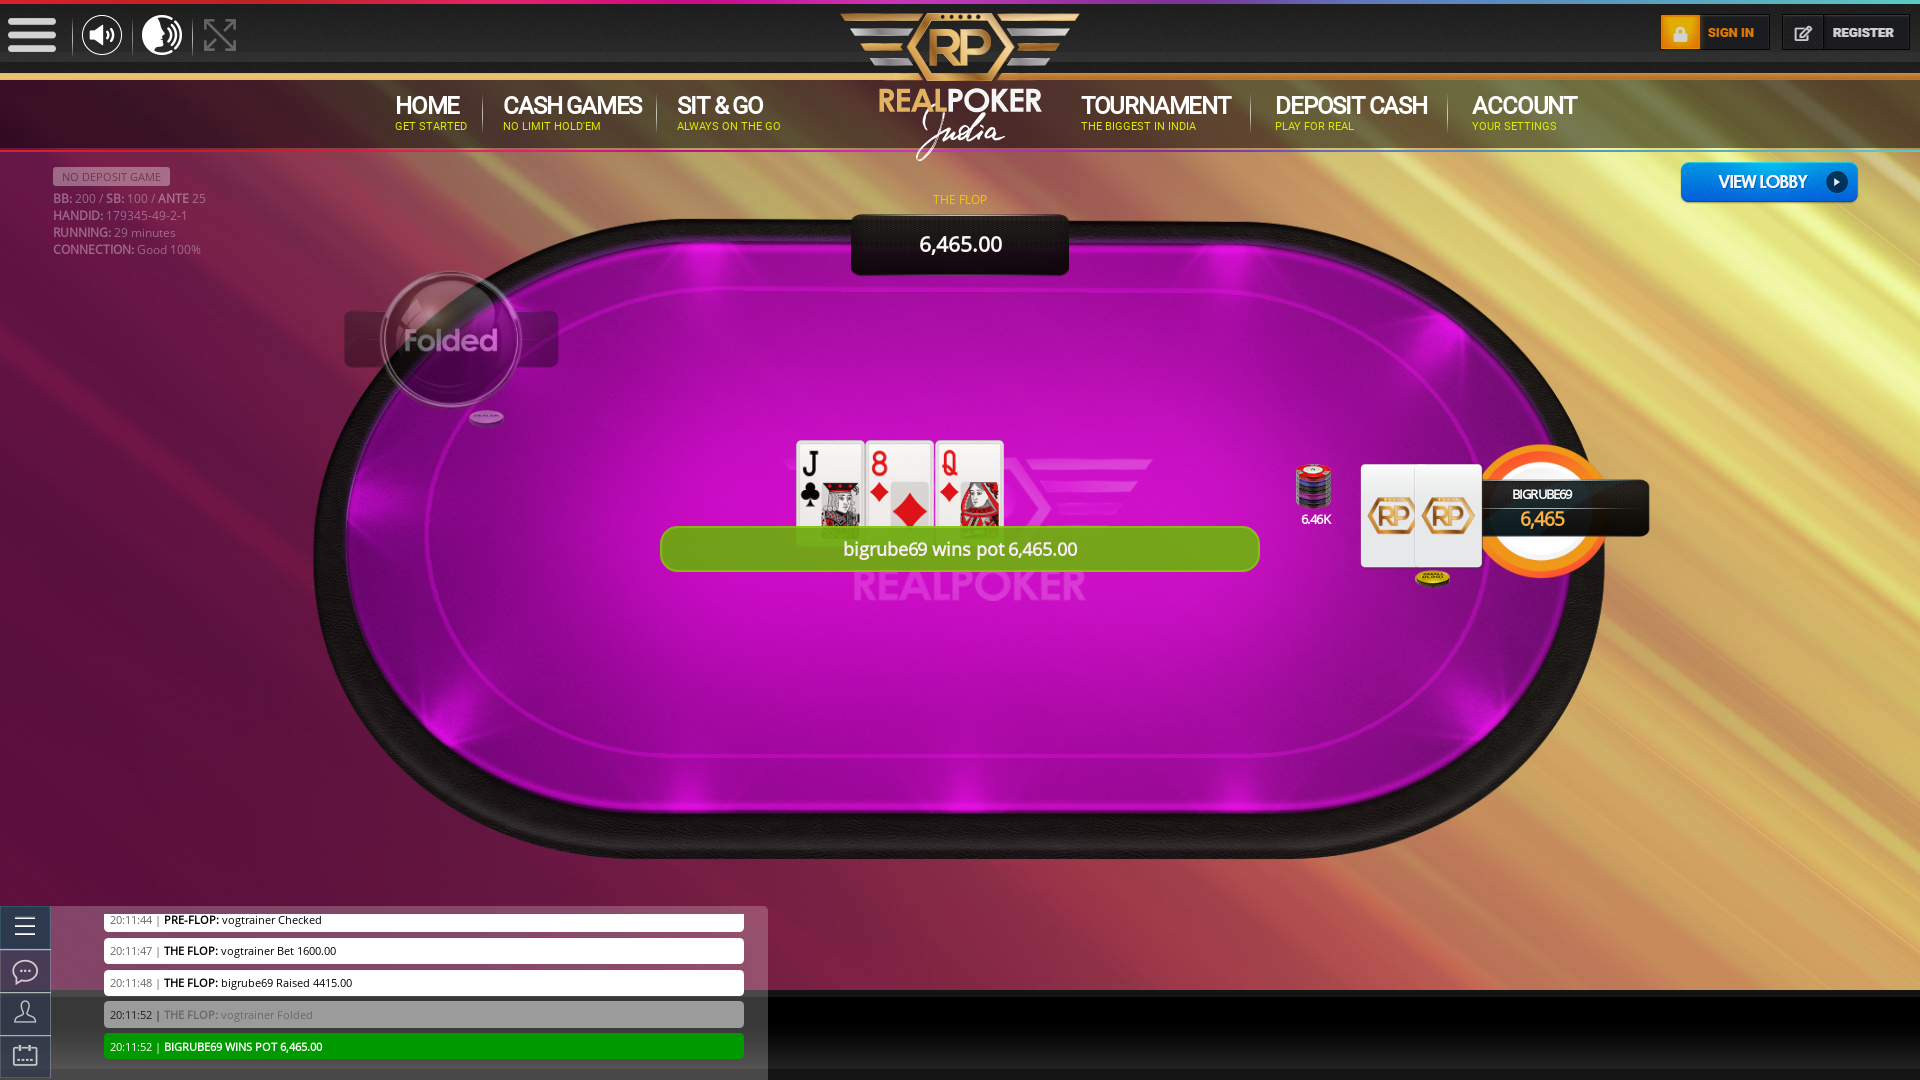 Jubilee Hills, Hyderabad online poker game on a 10 player table in the 28th minute of the match